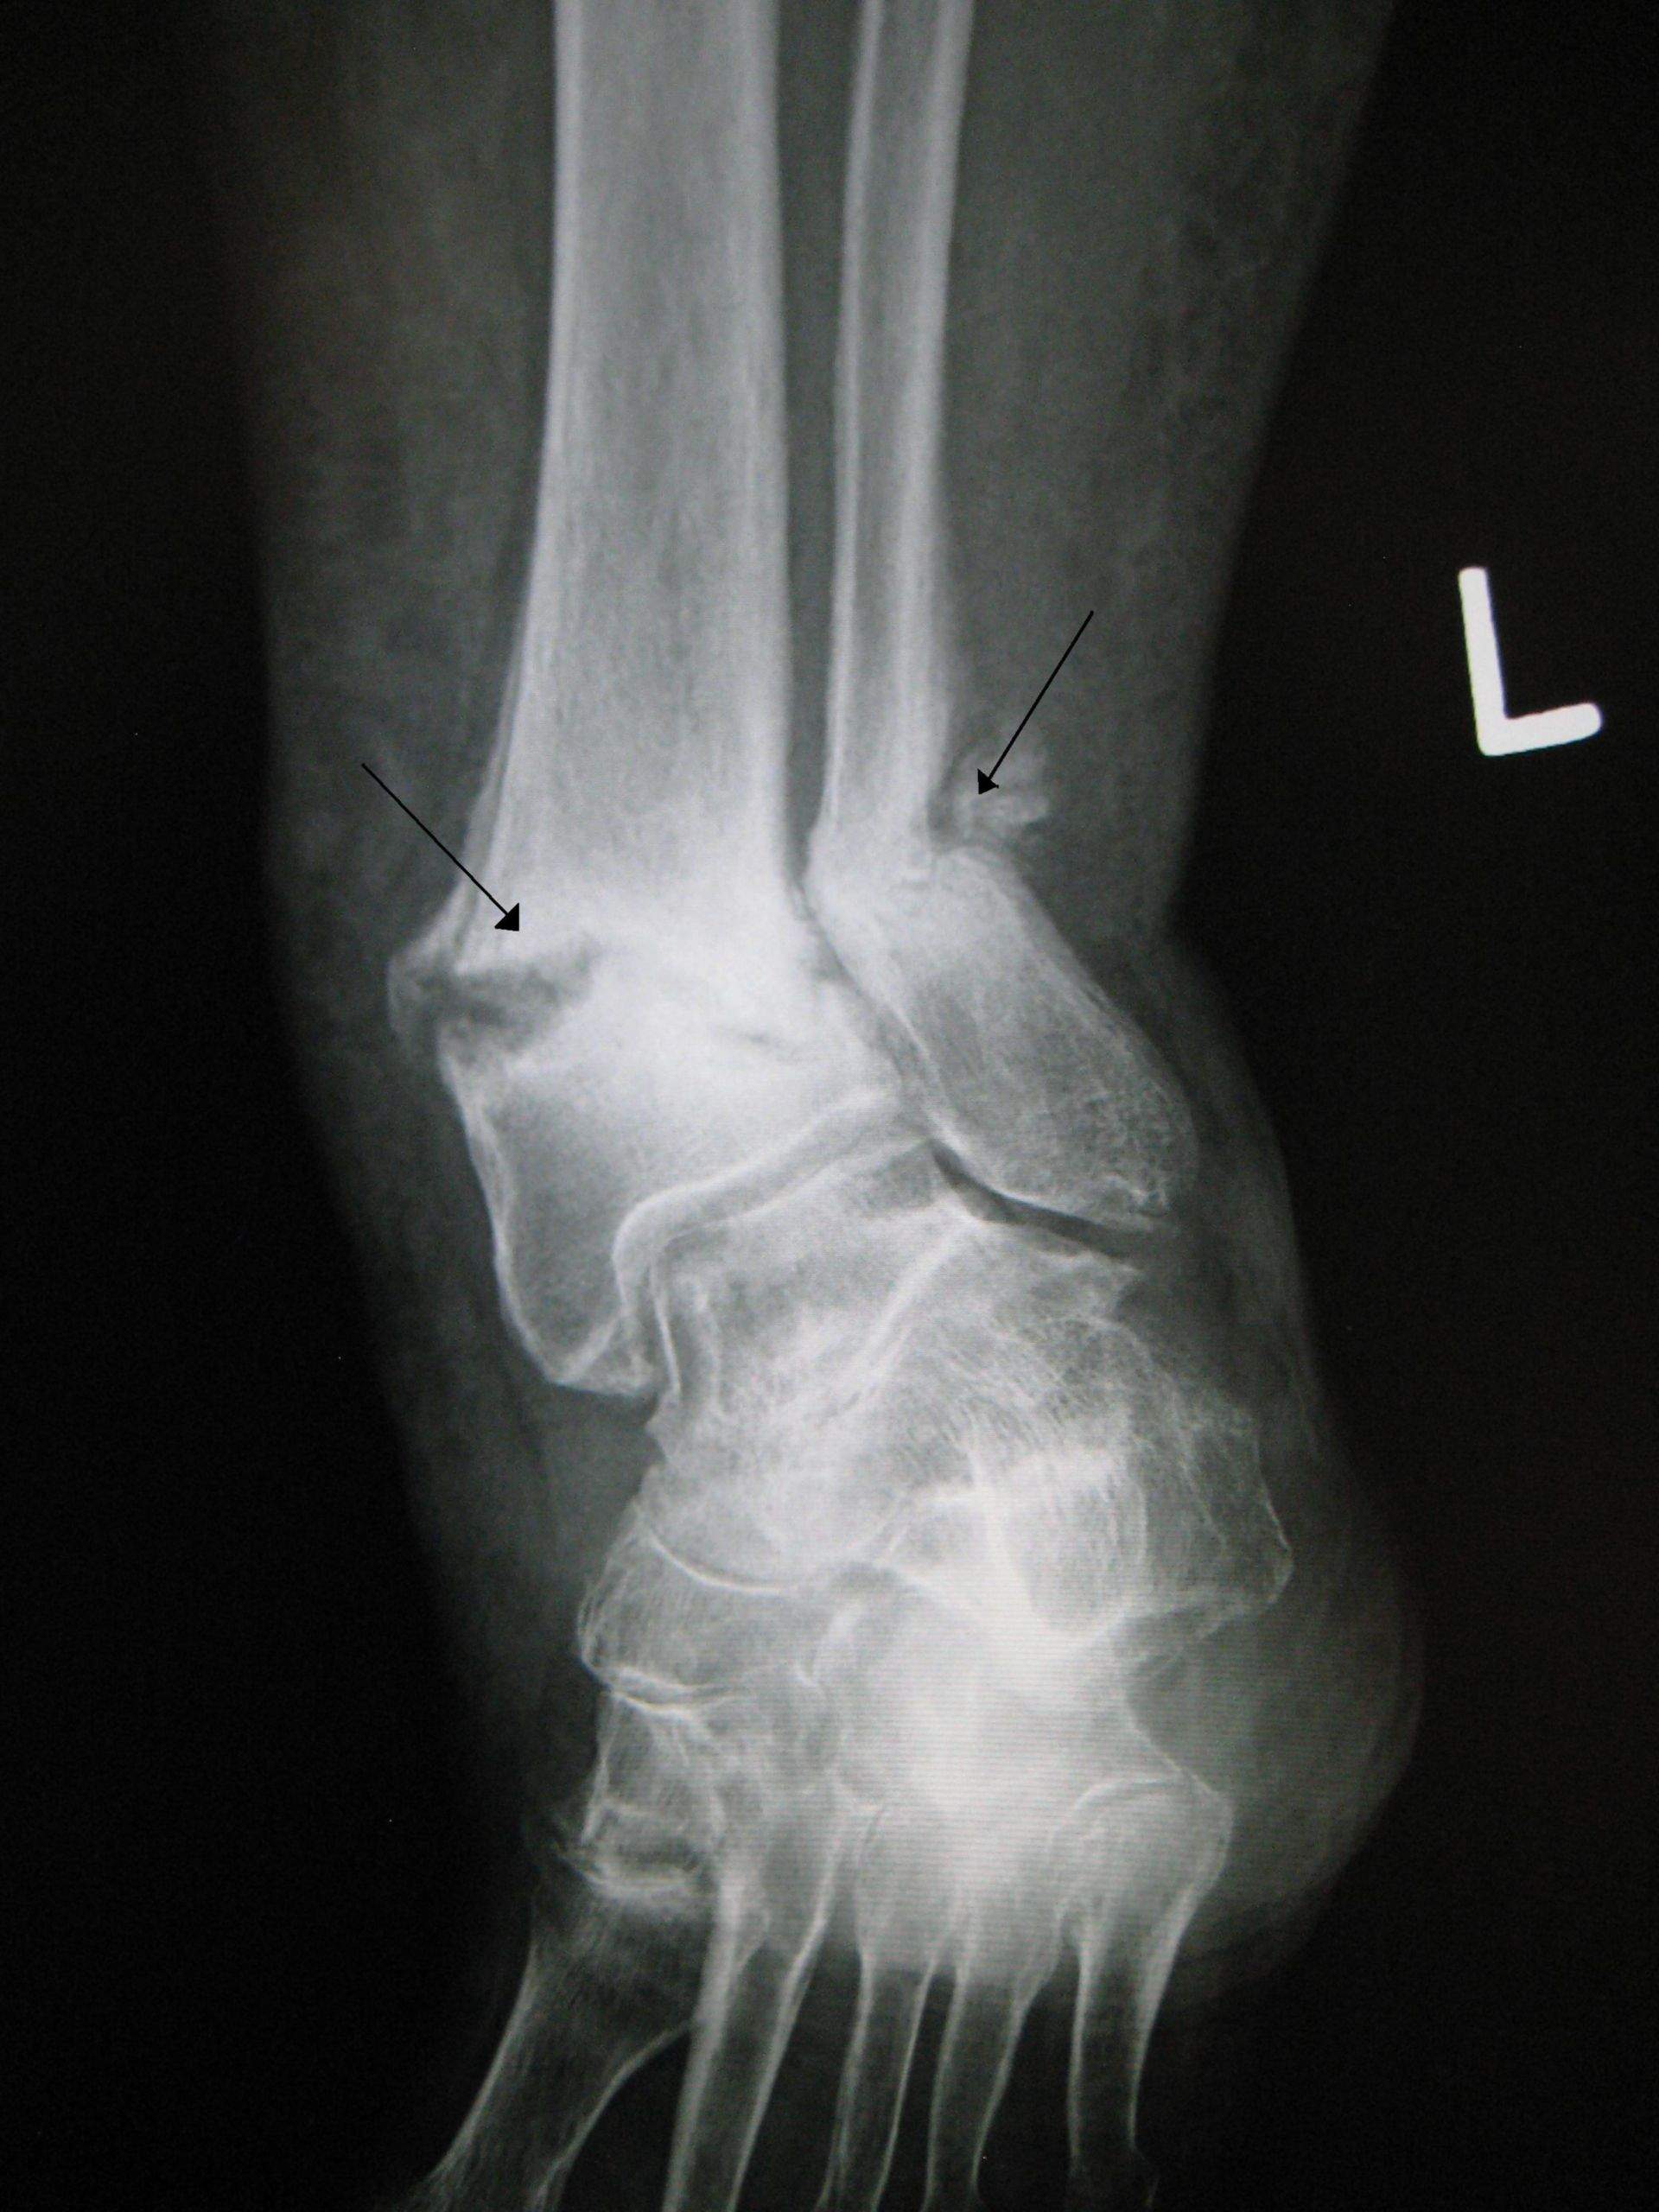 Old fracture